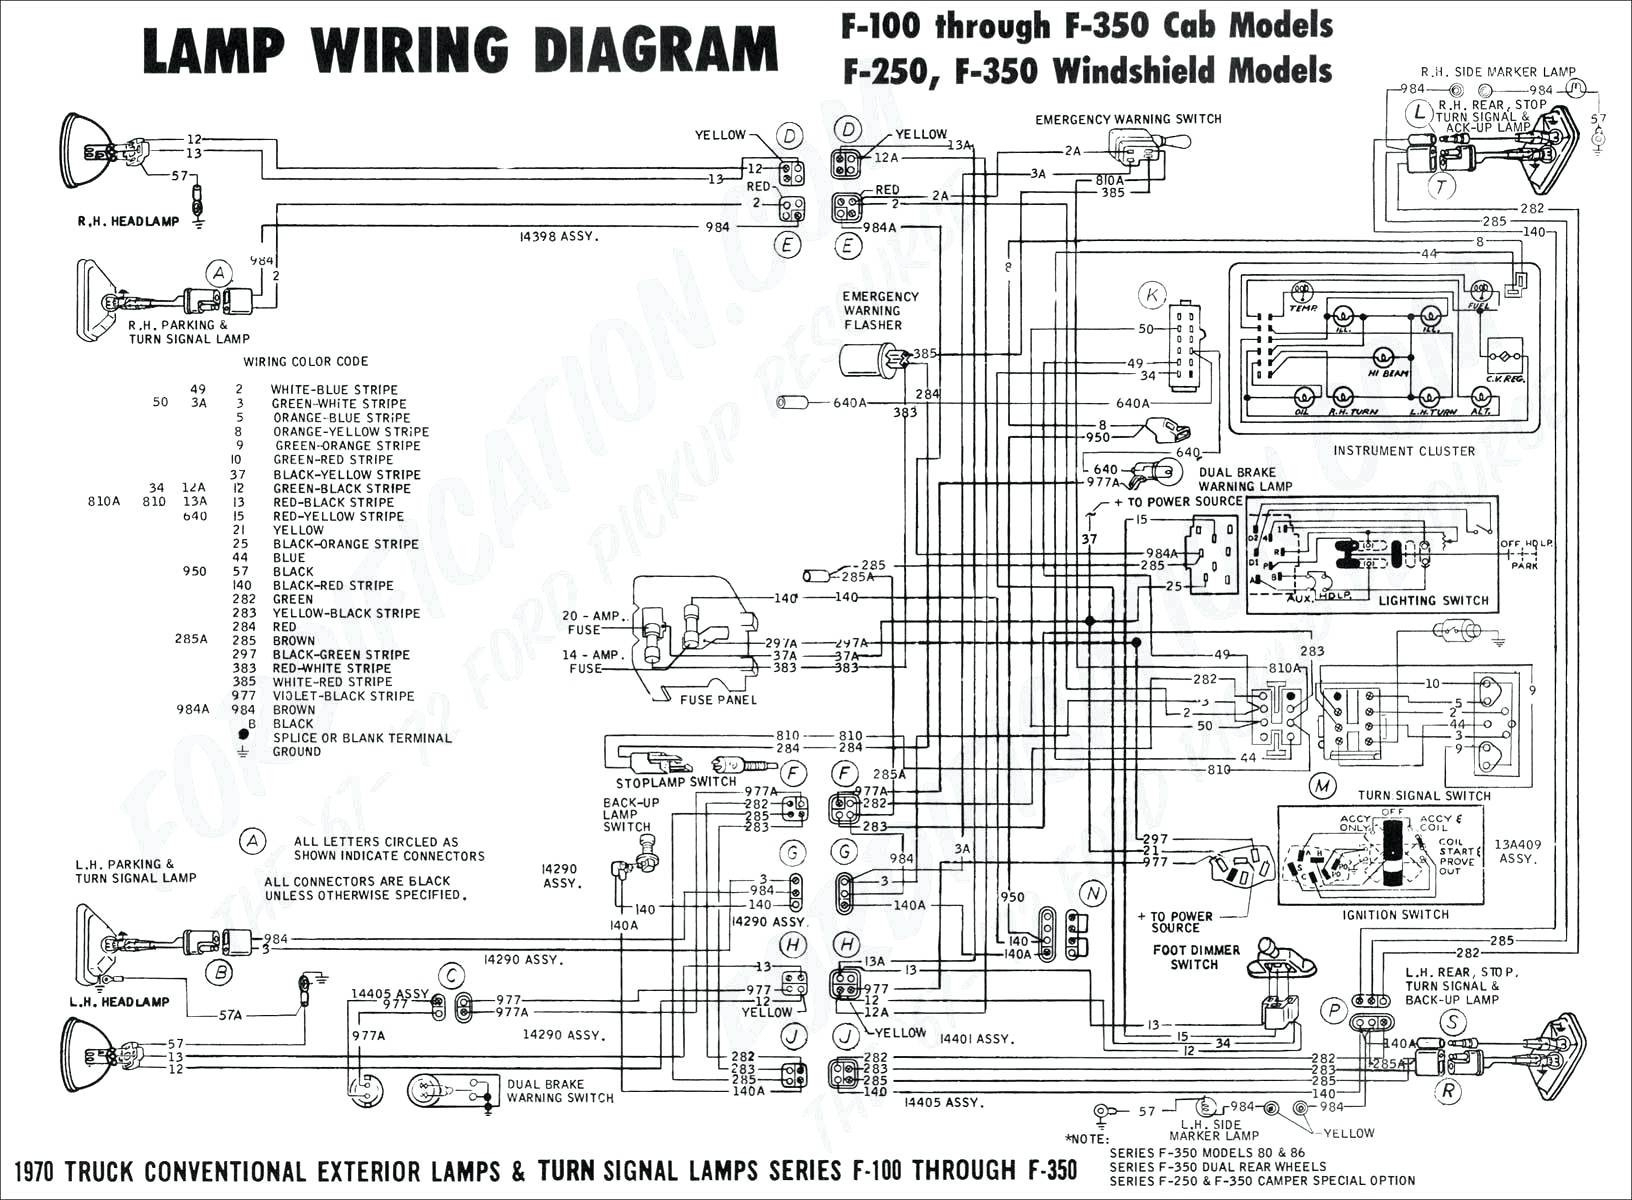 2015 Chevy Silverado Wiring Diagram | Free Wiring Diagram - 2014 Chevy Silverado Trailer Wiring Diagram